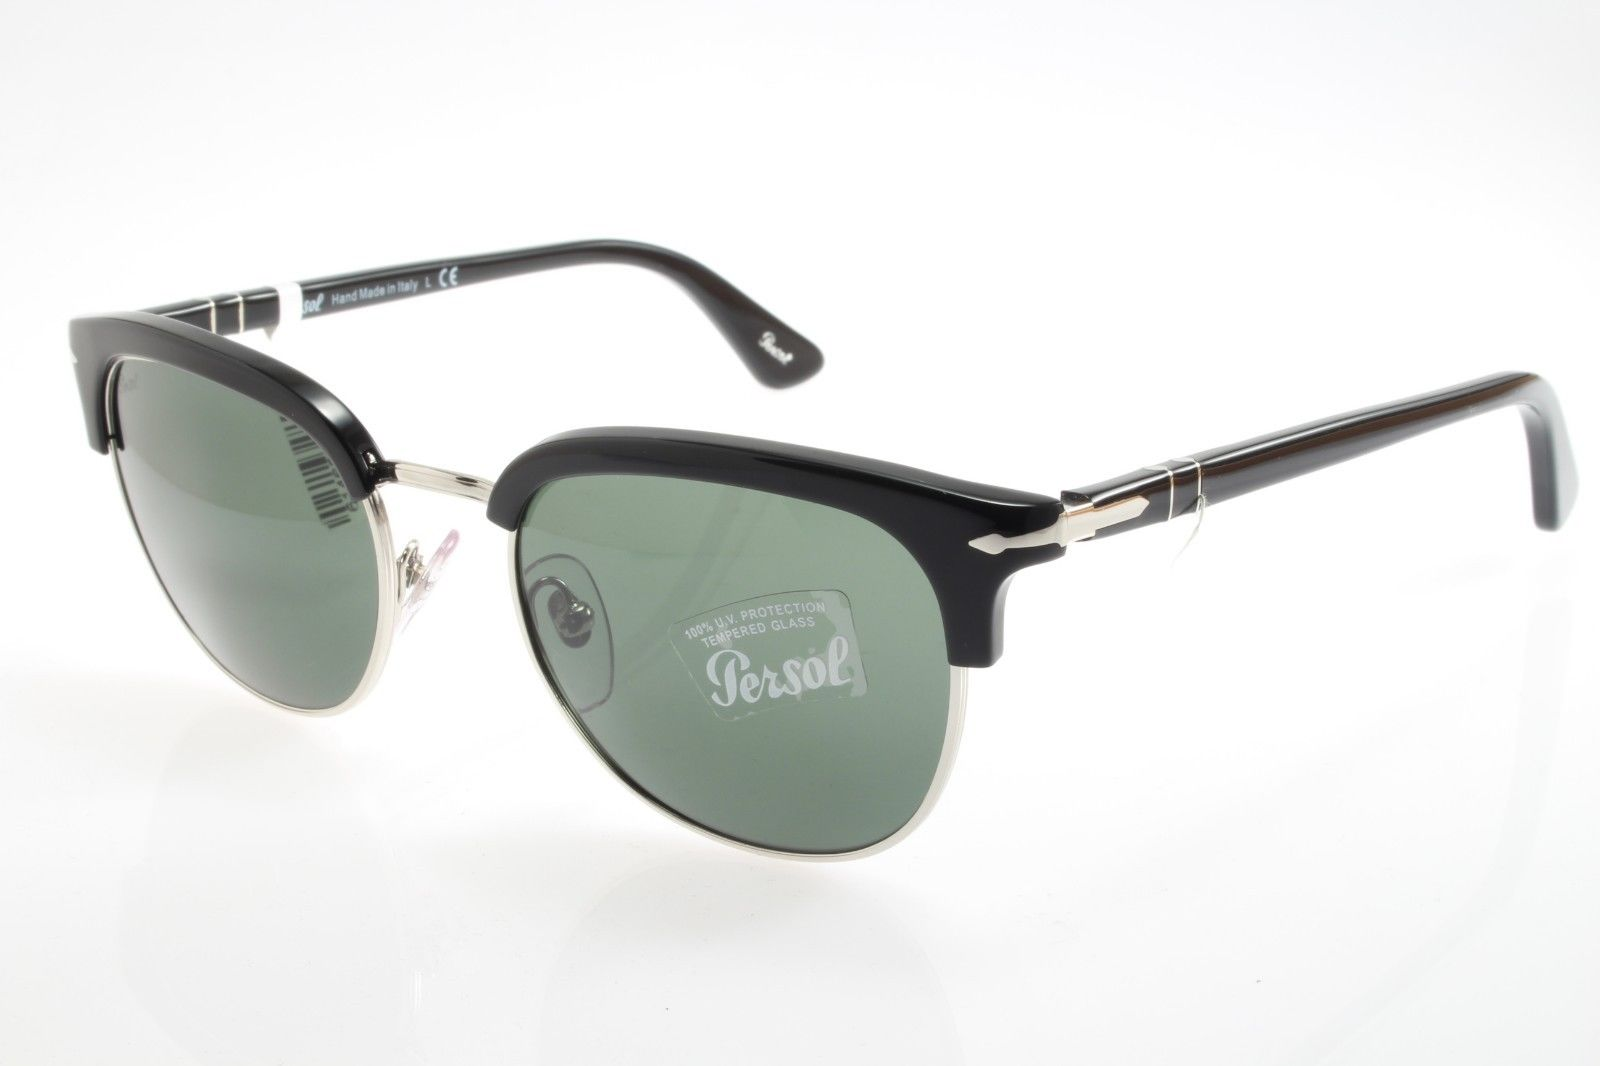 1508fd303a New authentic sunglasses Persol 3105S 95 31 51mm Black Crystal Green ...